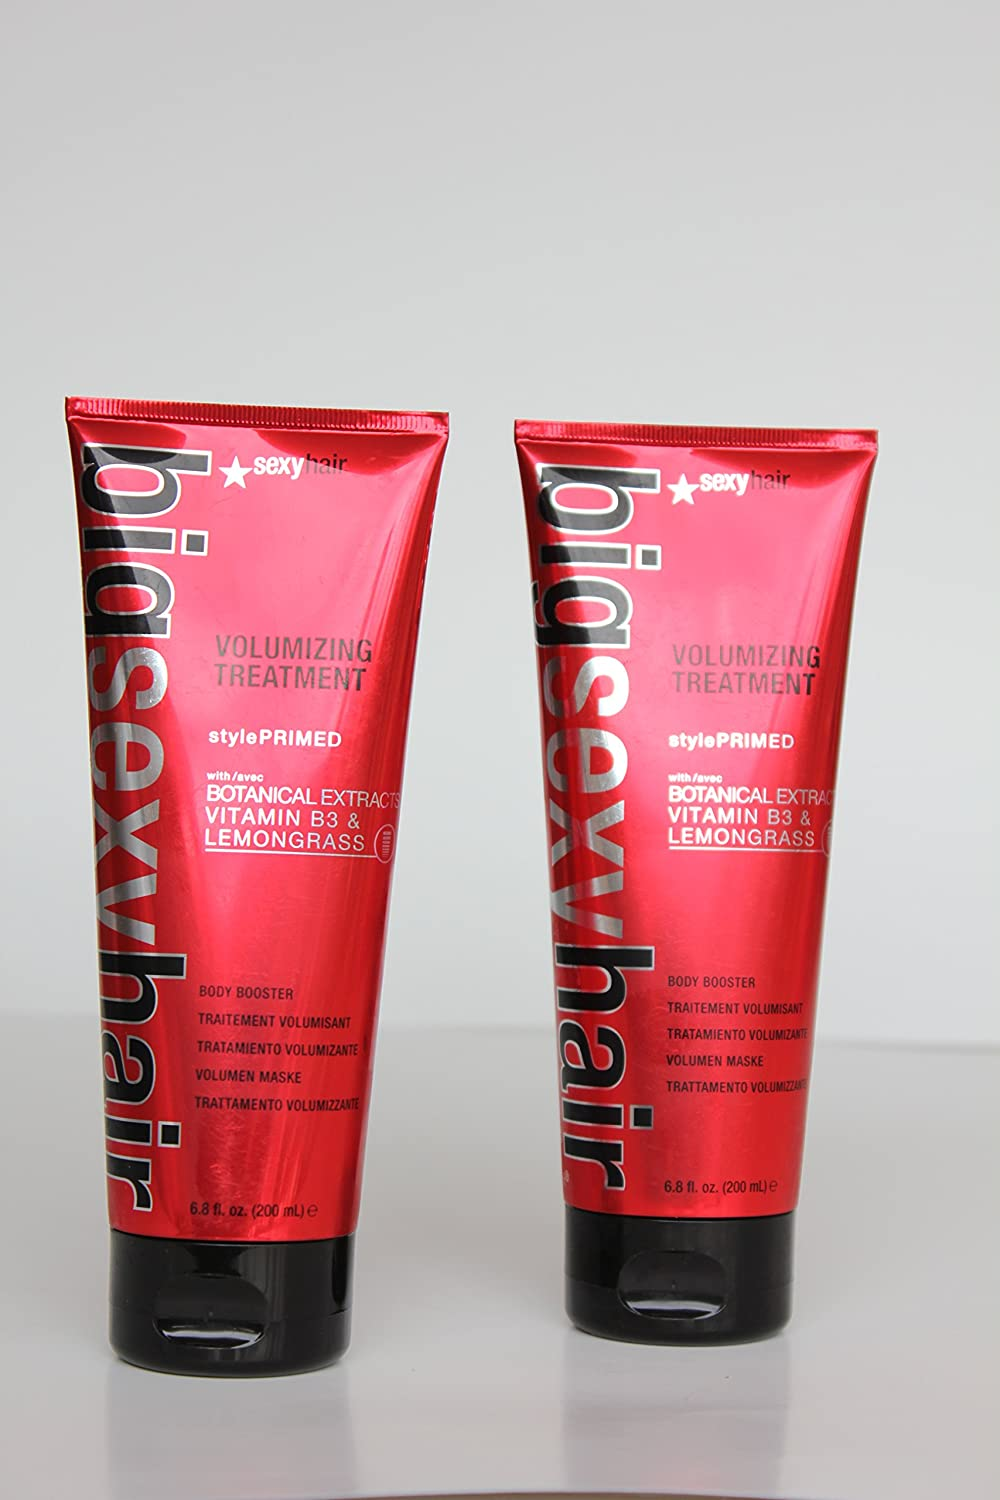 Big Sexy Volumizing Treatment By Sexy Hair Concepts Size 6.8oz Two Pack